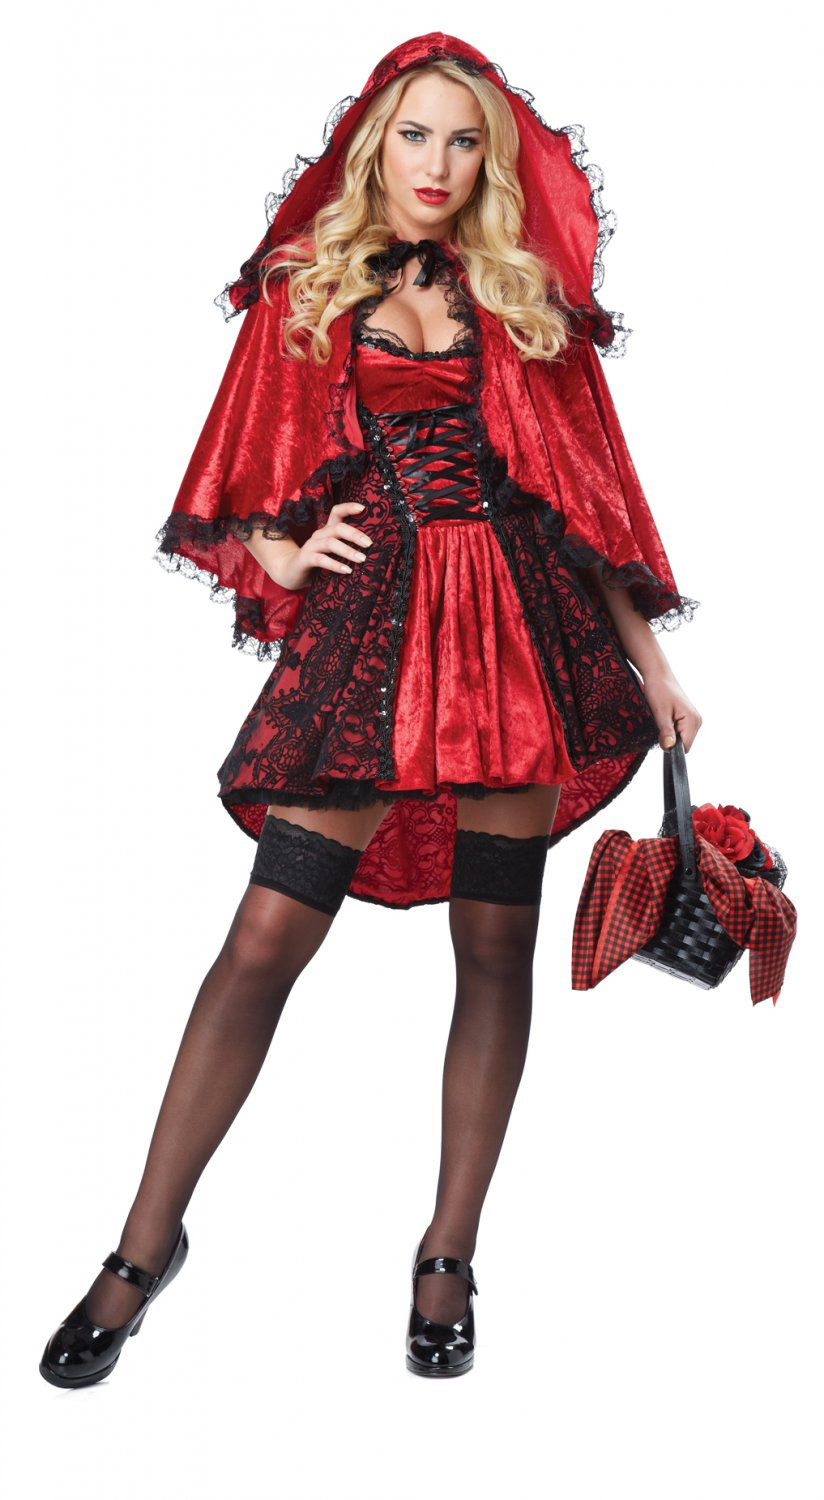 Dark Gothic Deluxe Red Riding Hood Adult Costume Size: X-Small #01300